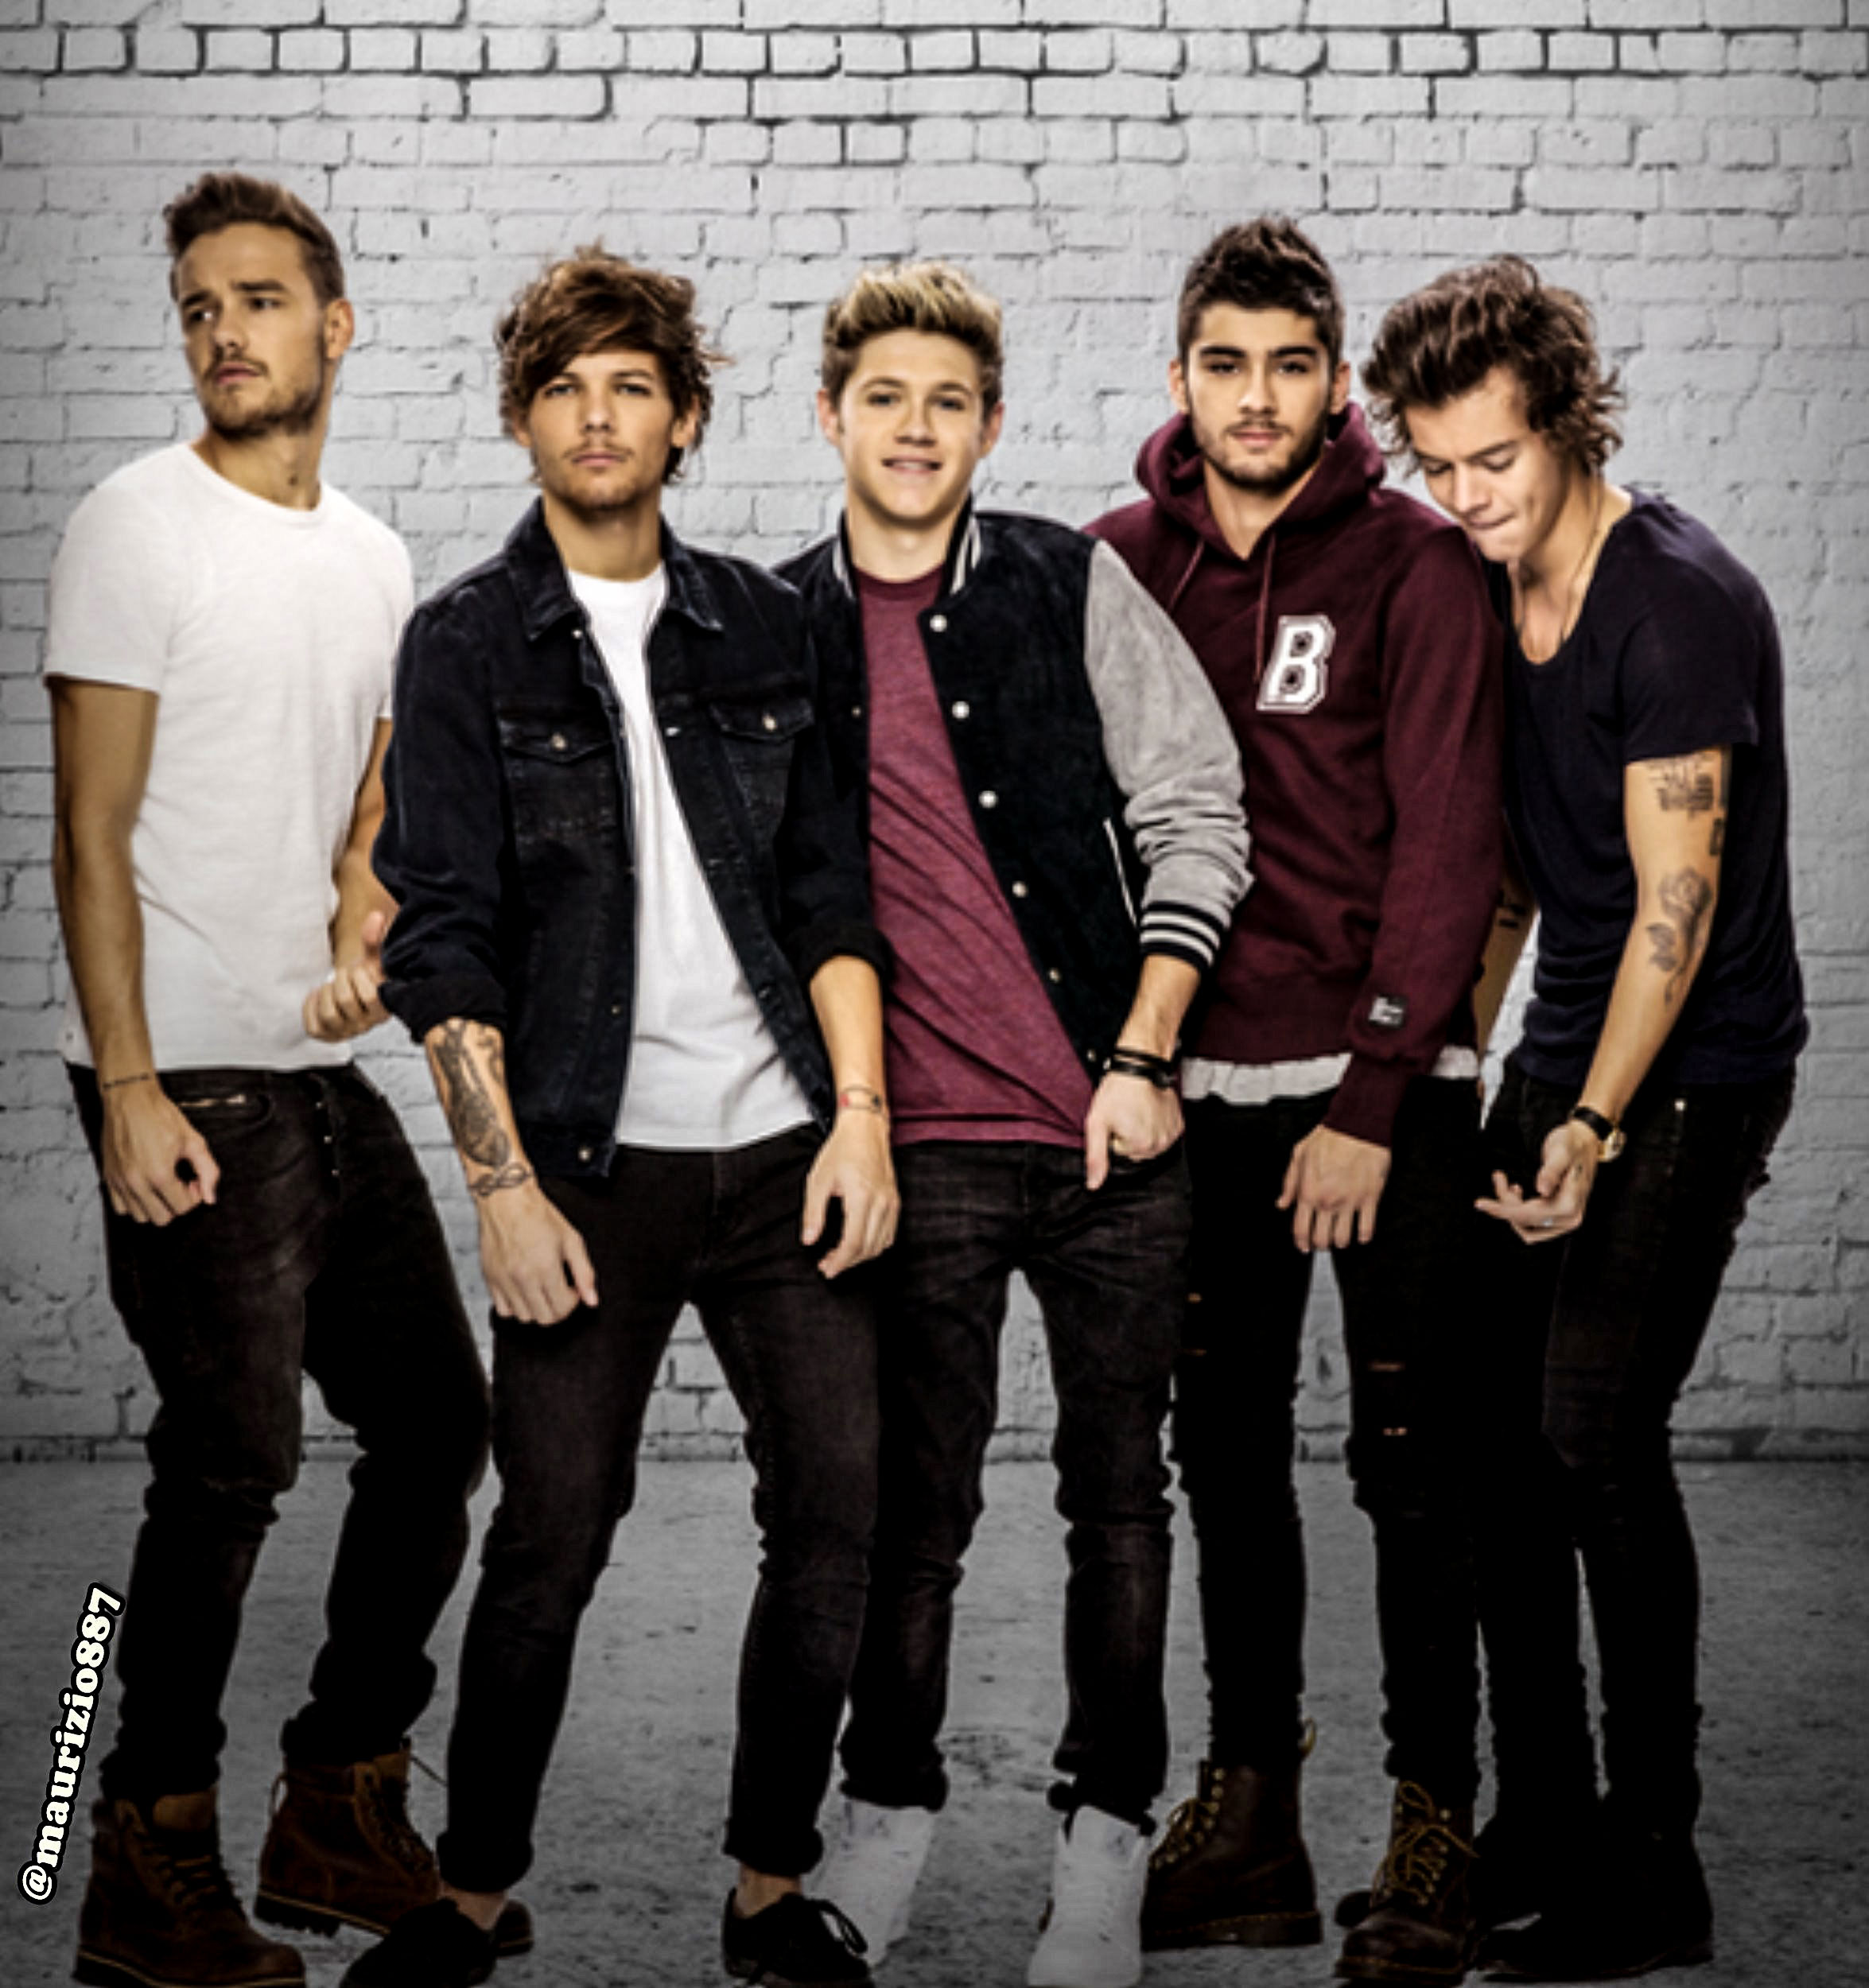 one-direction-photoshoot-2014-one-direction-37089222-2350-2500 jpgOne Direction Photoshoot 2014